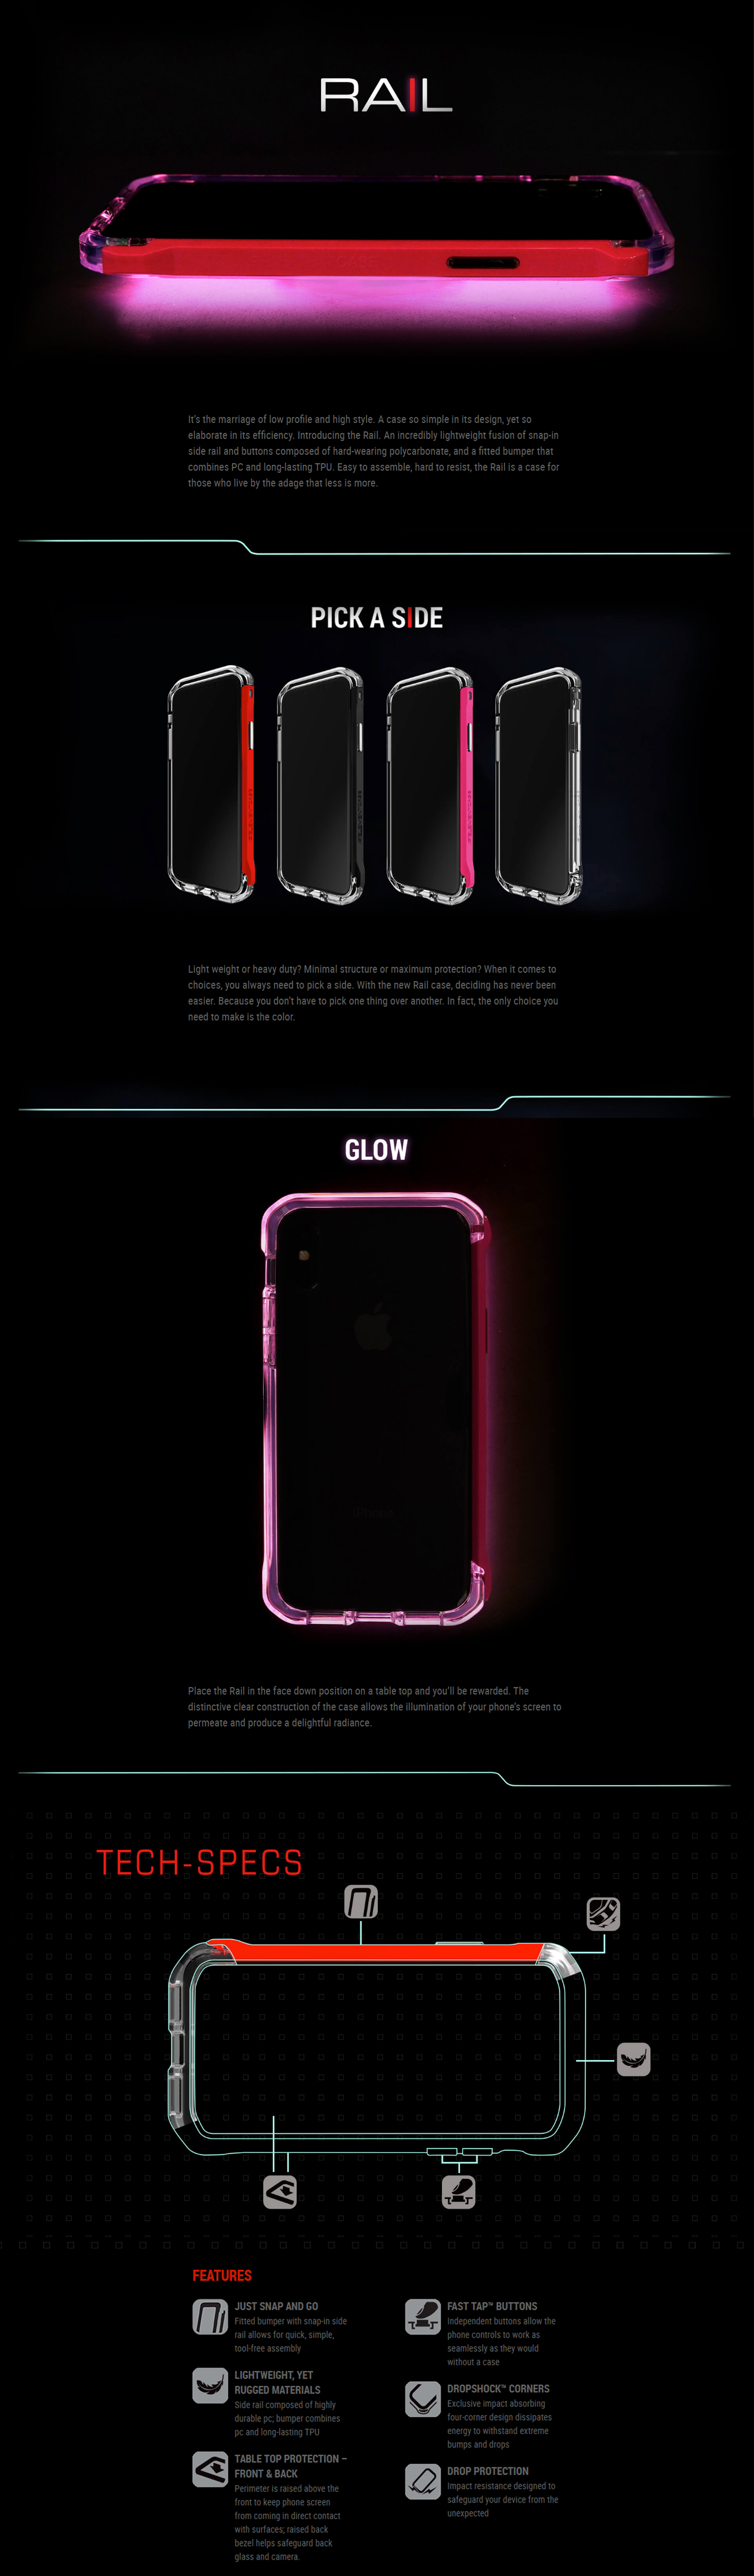 /Element%20Case/765951766947/1-des-fx-element-case-rail-iphone-11-pro-clear-clear-color-765951766947-forexengineer-malaysia-authorised-retailer